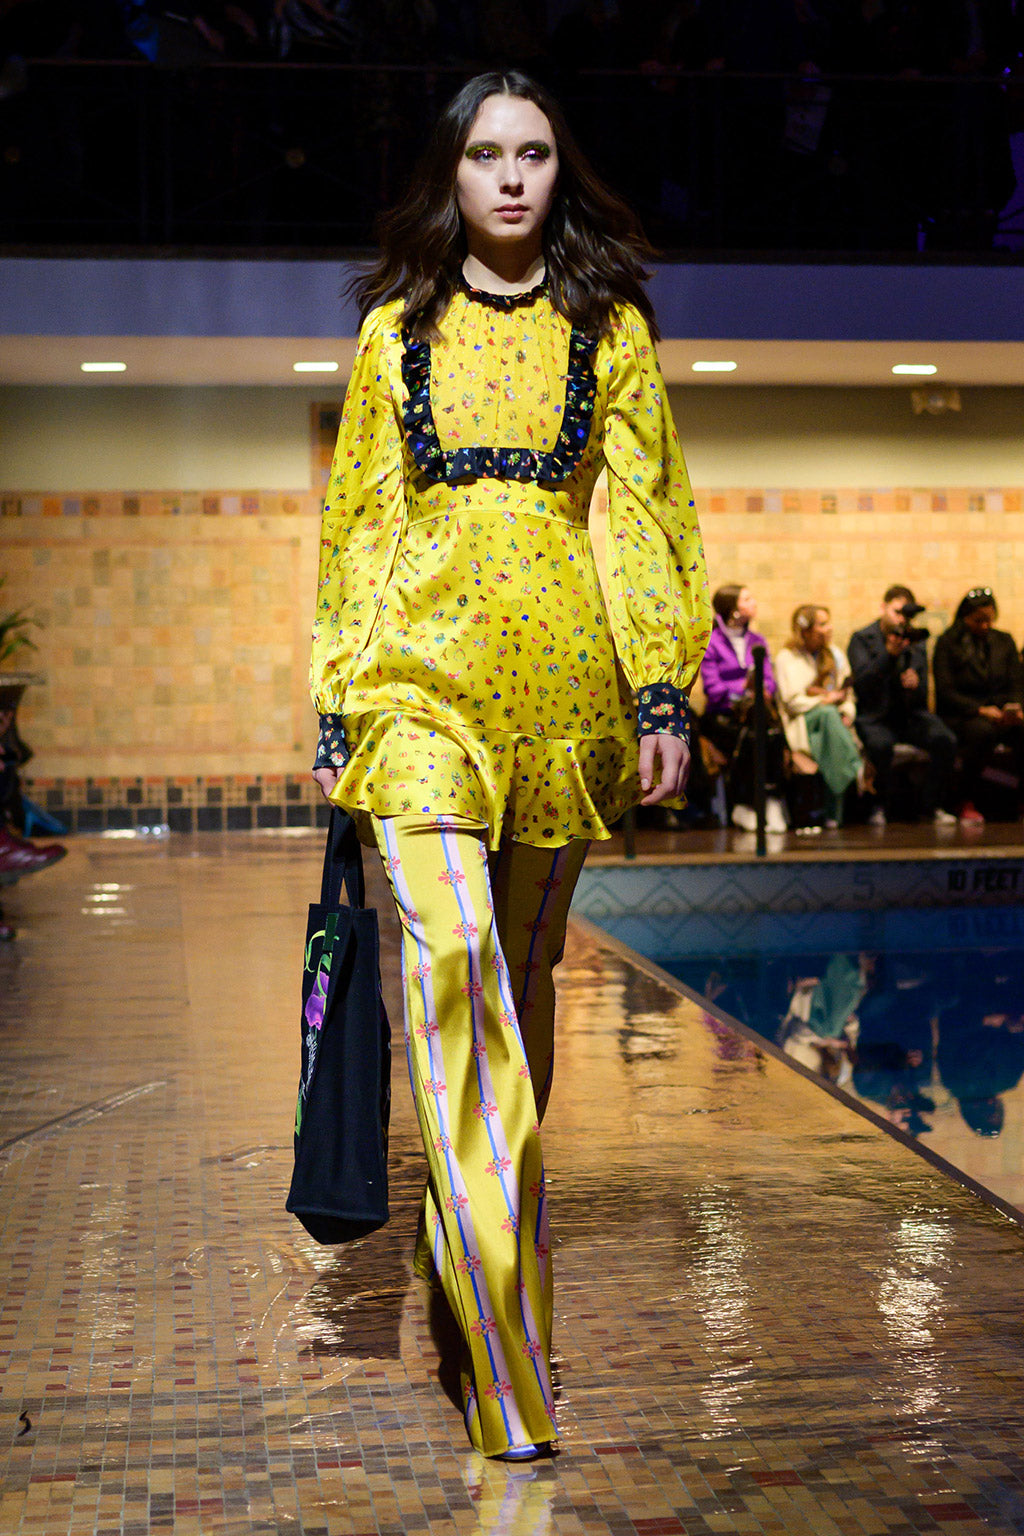 Cynthia Rowley Fall 2019 look 18 featuring a yellow printed long sleeve top with black trimming and a ruffle bottom as well as yellow printed wide leg bottoms